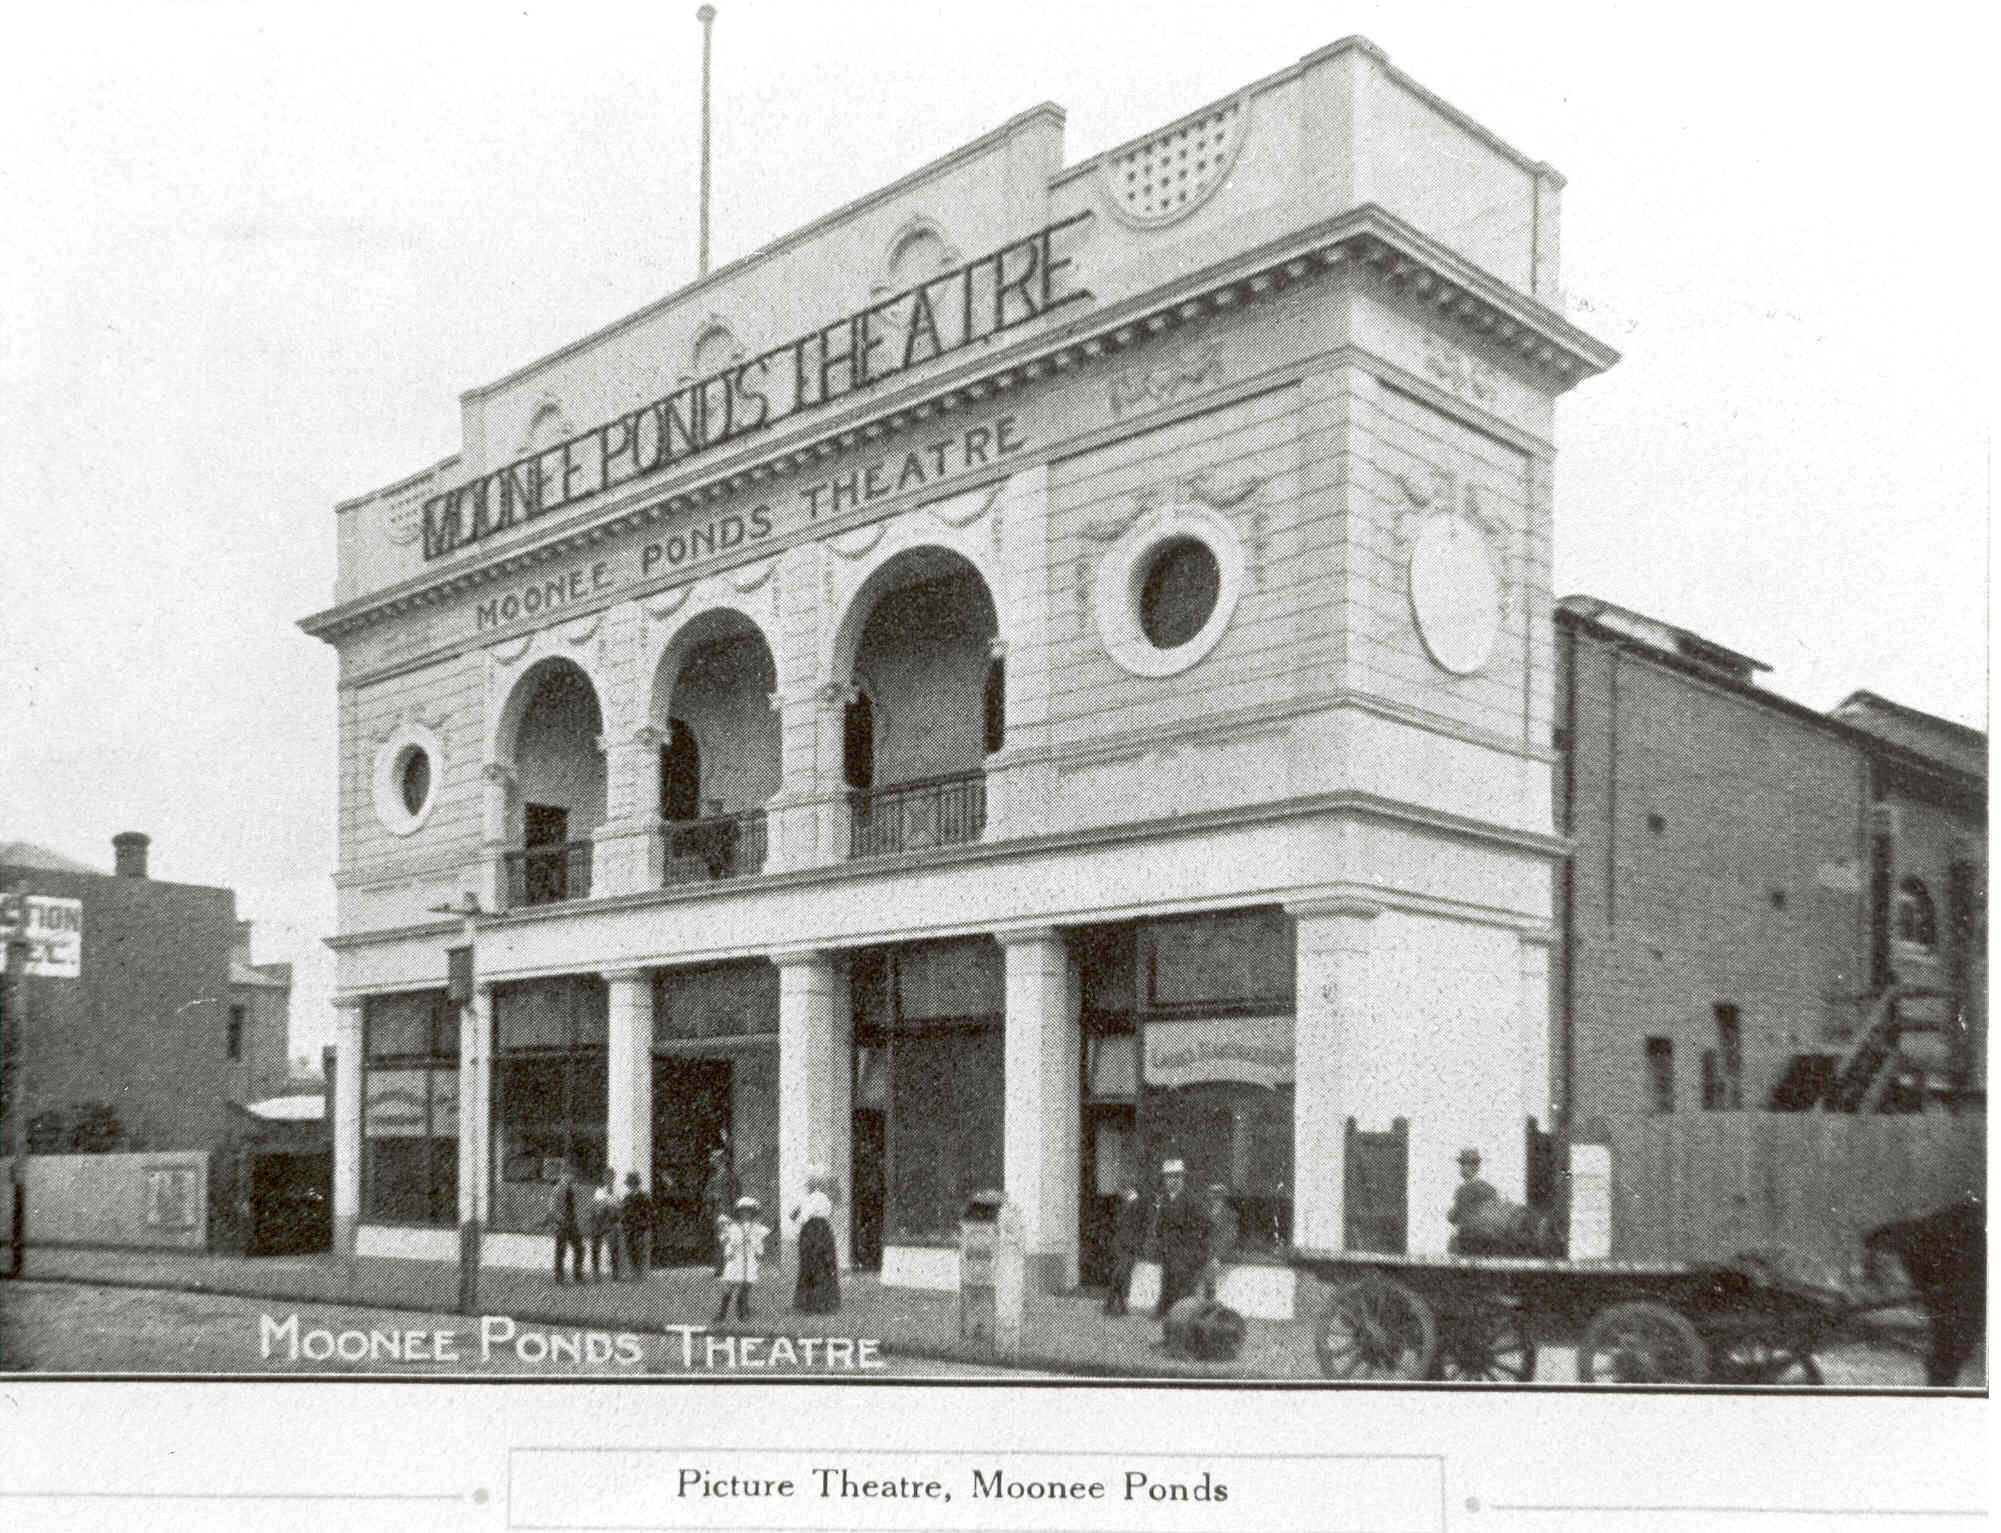 Moonee Ponds Theatre